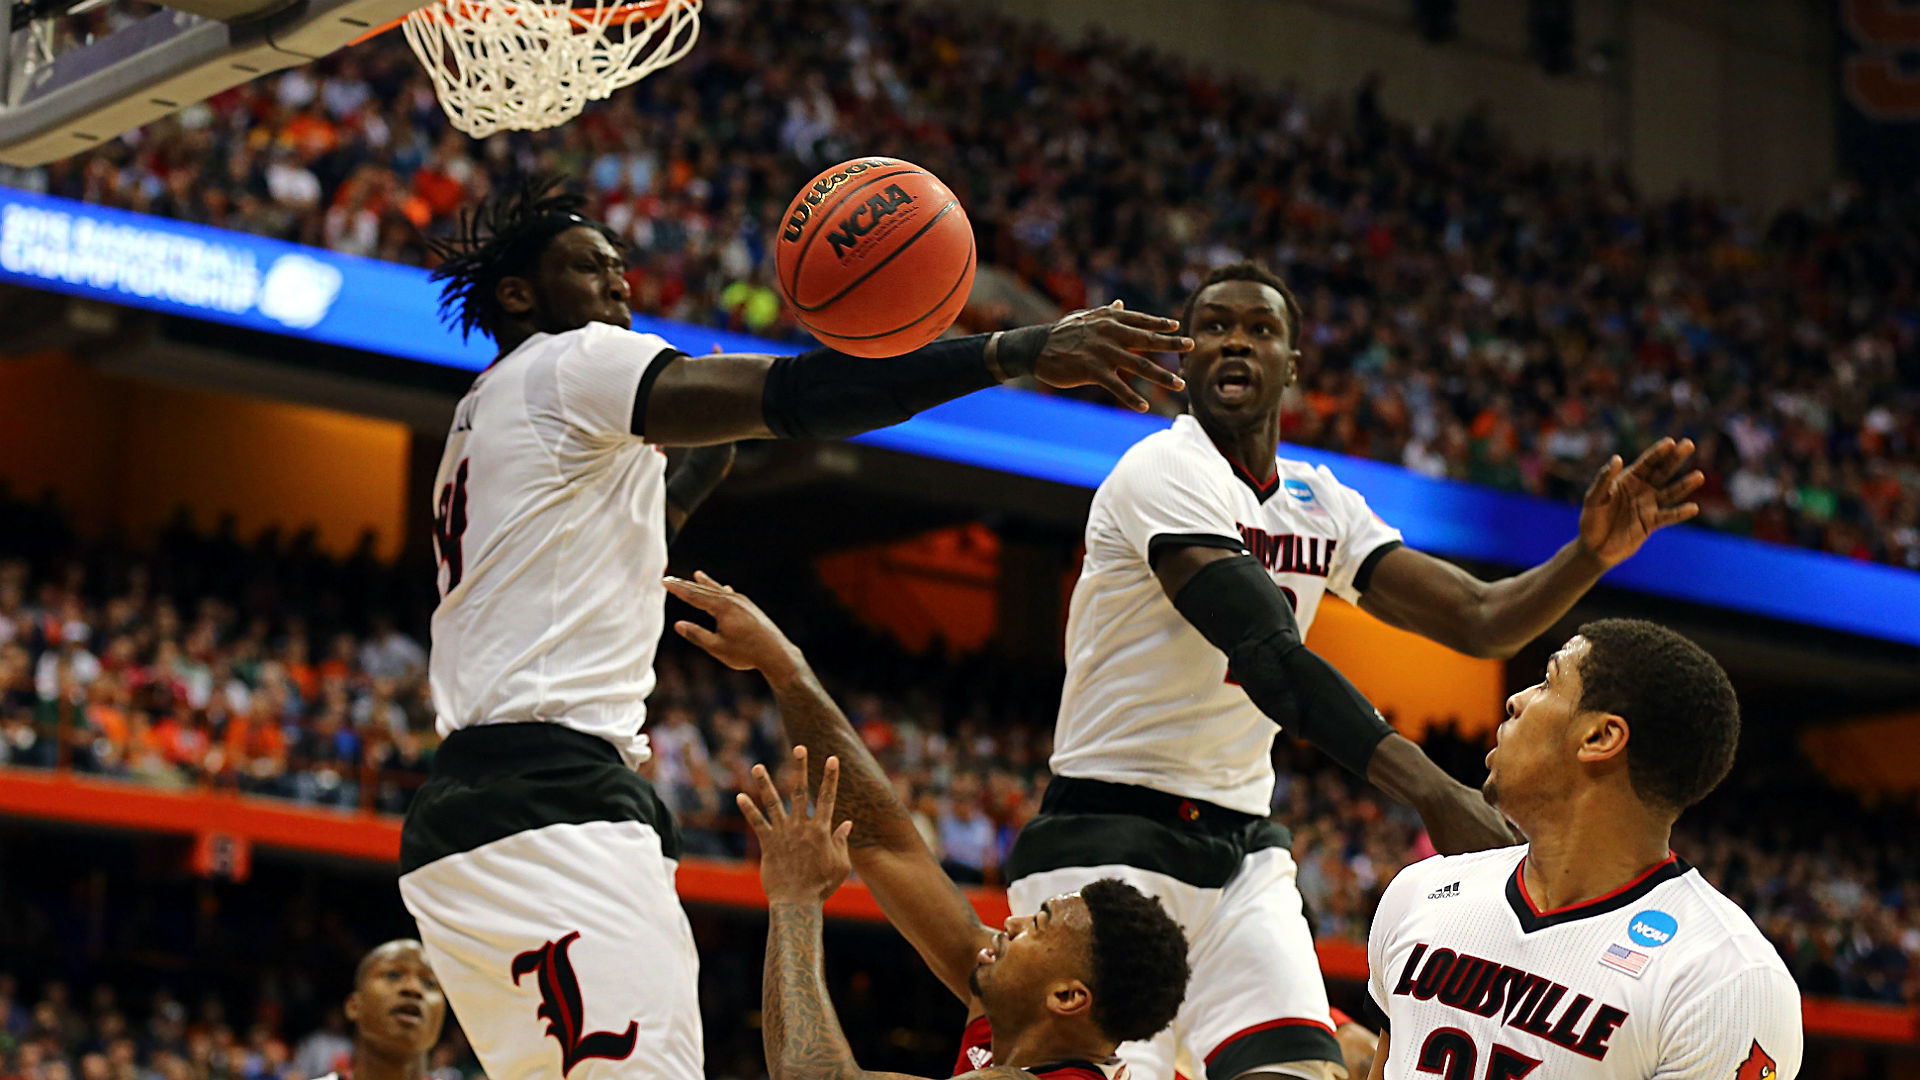 Elite Eight picks from AccuScore – Three plays on Sunday's card